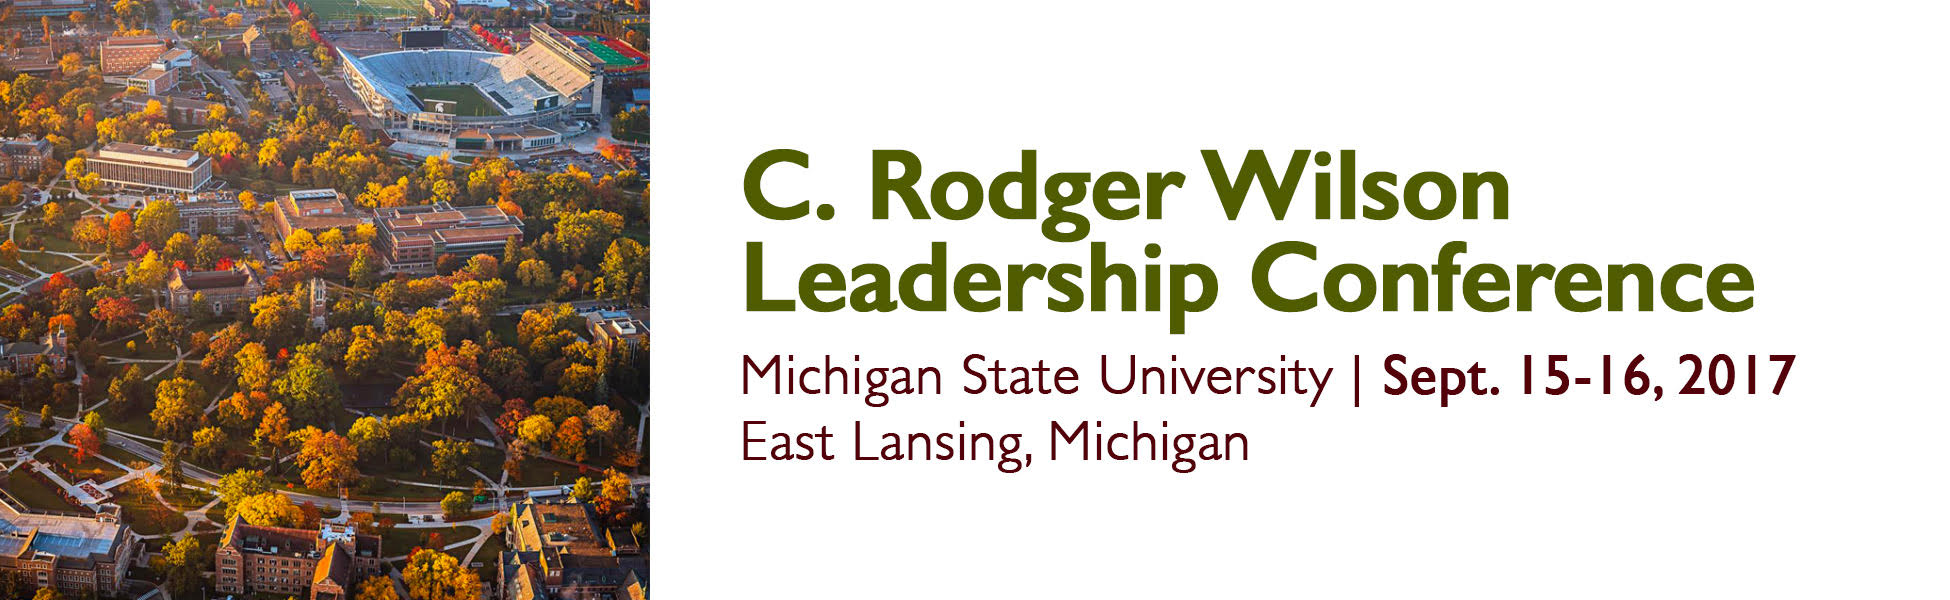 2017 C. Rodger Wilson Leadership Conference @ Michigan State University - James B. Henry Center for Executive Development | Lansing | Michigan | United States